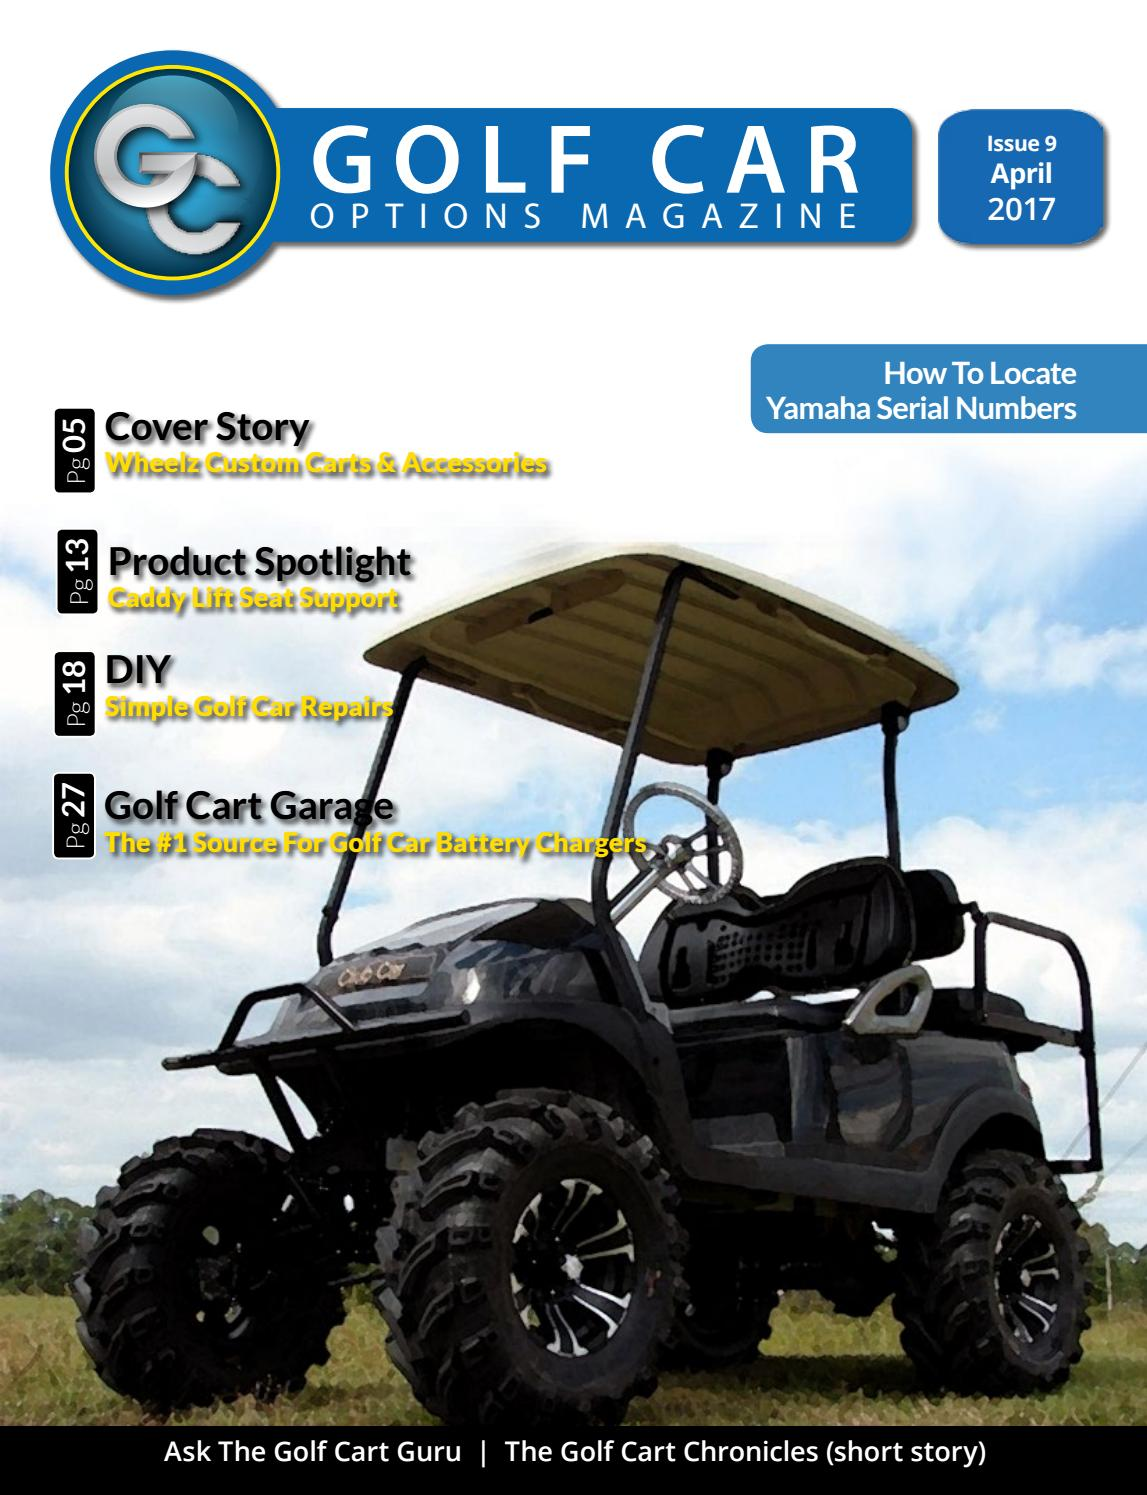 Golf Cart Hunting Buggy together with Yamaha Serial Locator as well Chevy Tahoe Radio Wiring Diagram Best Of Chevy Impala Wiring Diagram Inspirational New Chevy Impala Of Chevy Tahoe Radio Wiring Diagram together with Maxresdefault further Carb Rebuild Kit Yam G Zoom. on yamaha g9 golf cart engine diagram